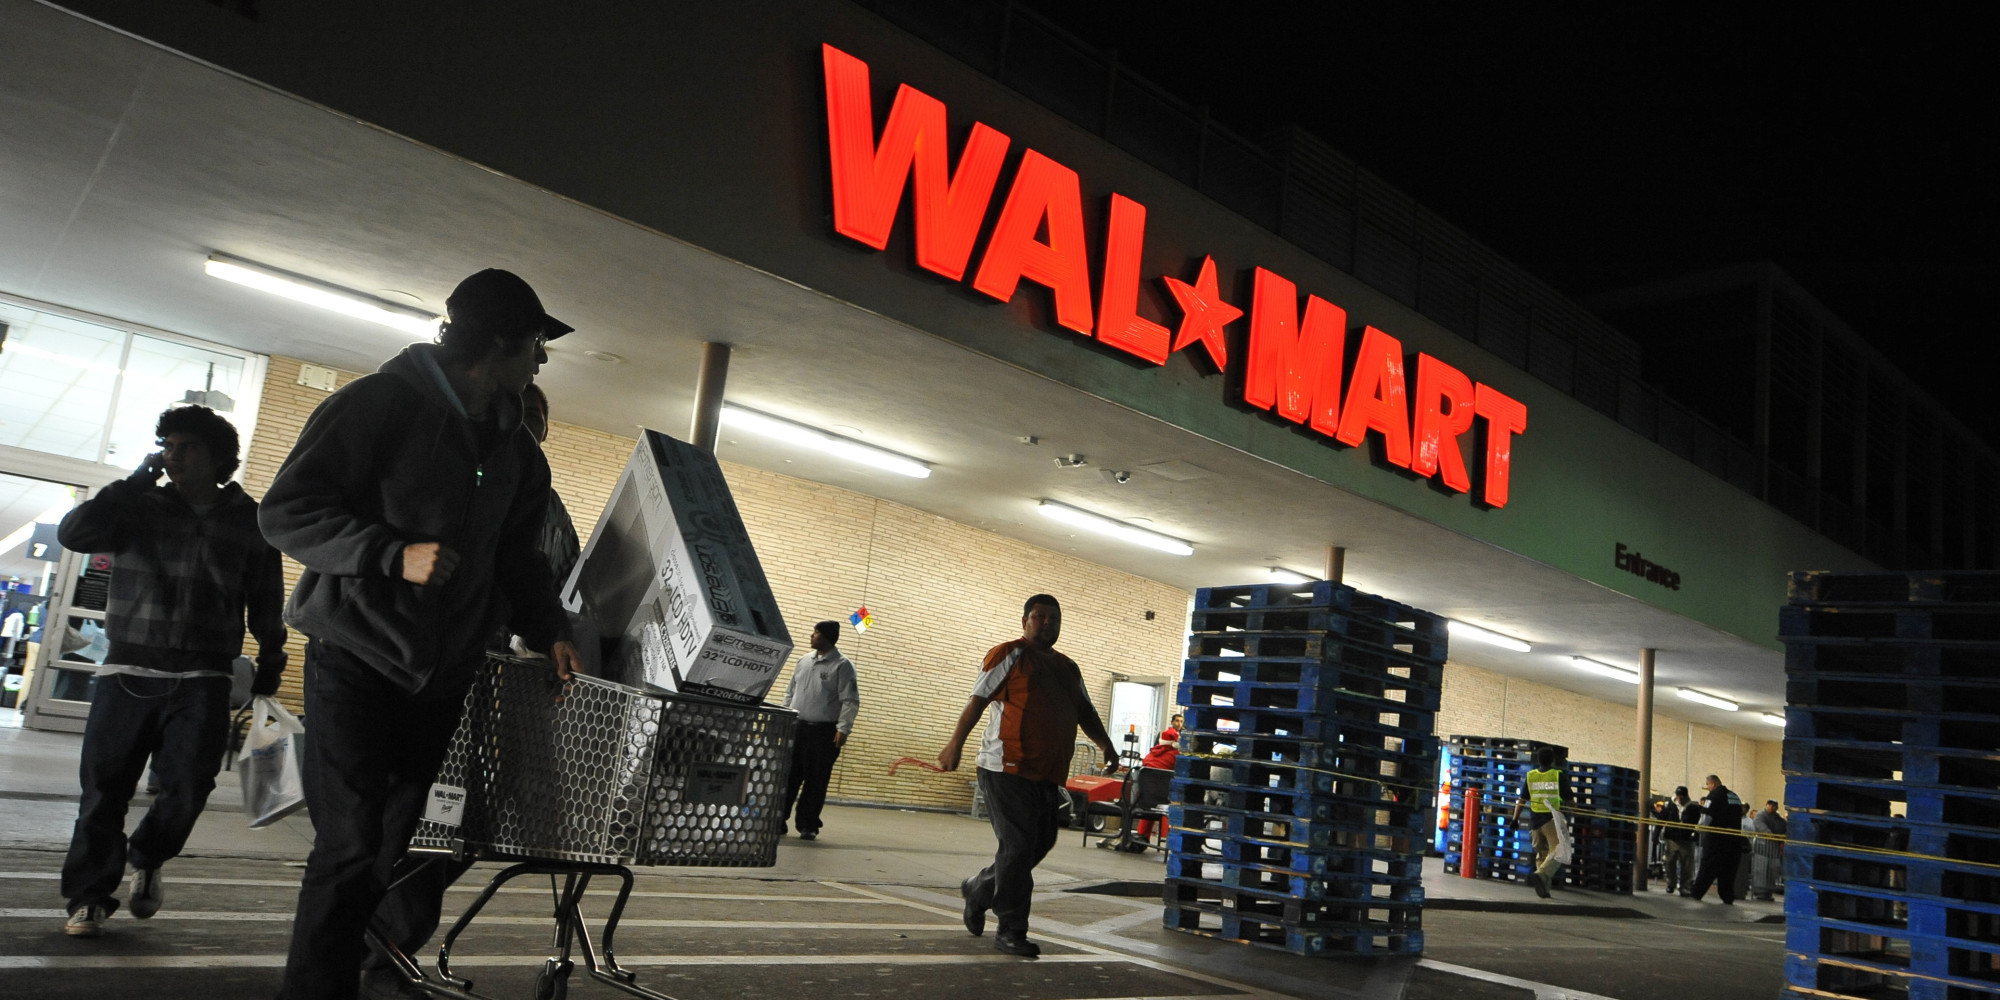 Shoppers wheel their purchases out of a Wal-Mart store in Los Angeles, California, before dawn on Black Friday, November 27, 2009. The annual sales bonanza is held one day after the Thanksgiving holiday. AFP PHOTO / Robyn Beck (Photo credit should read ROBYN BECK/AFP/Getty Images)